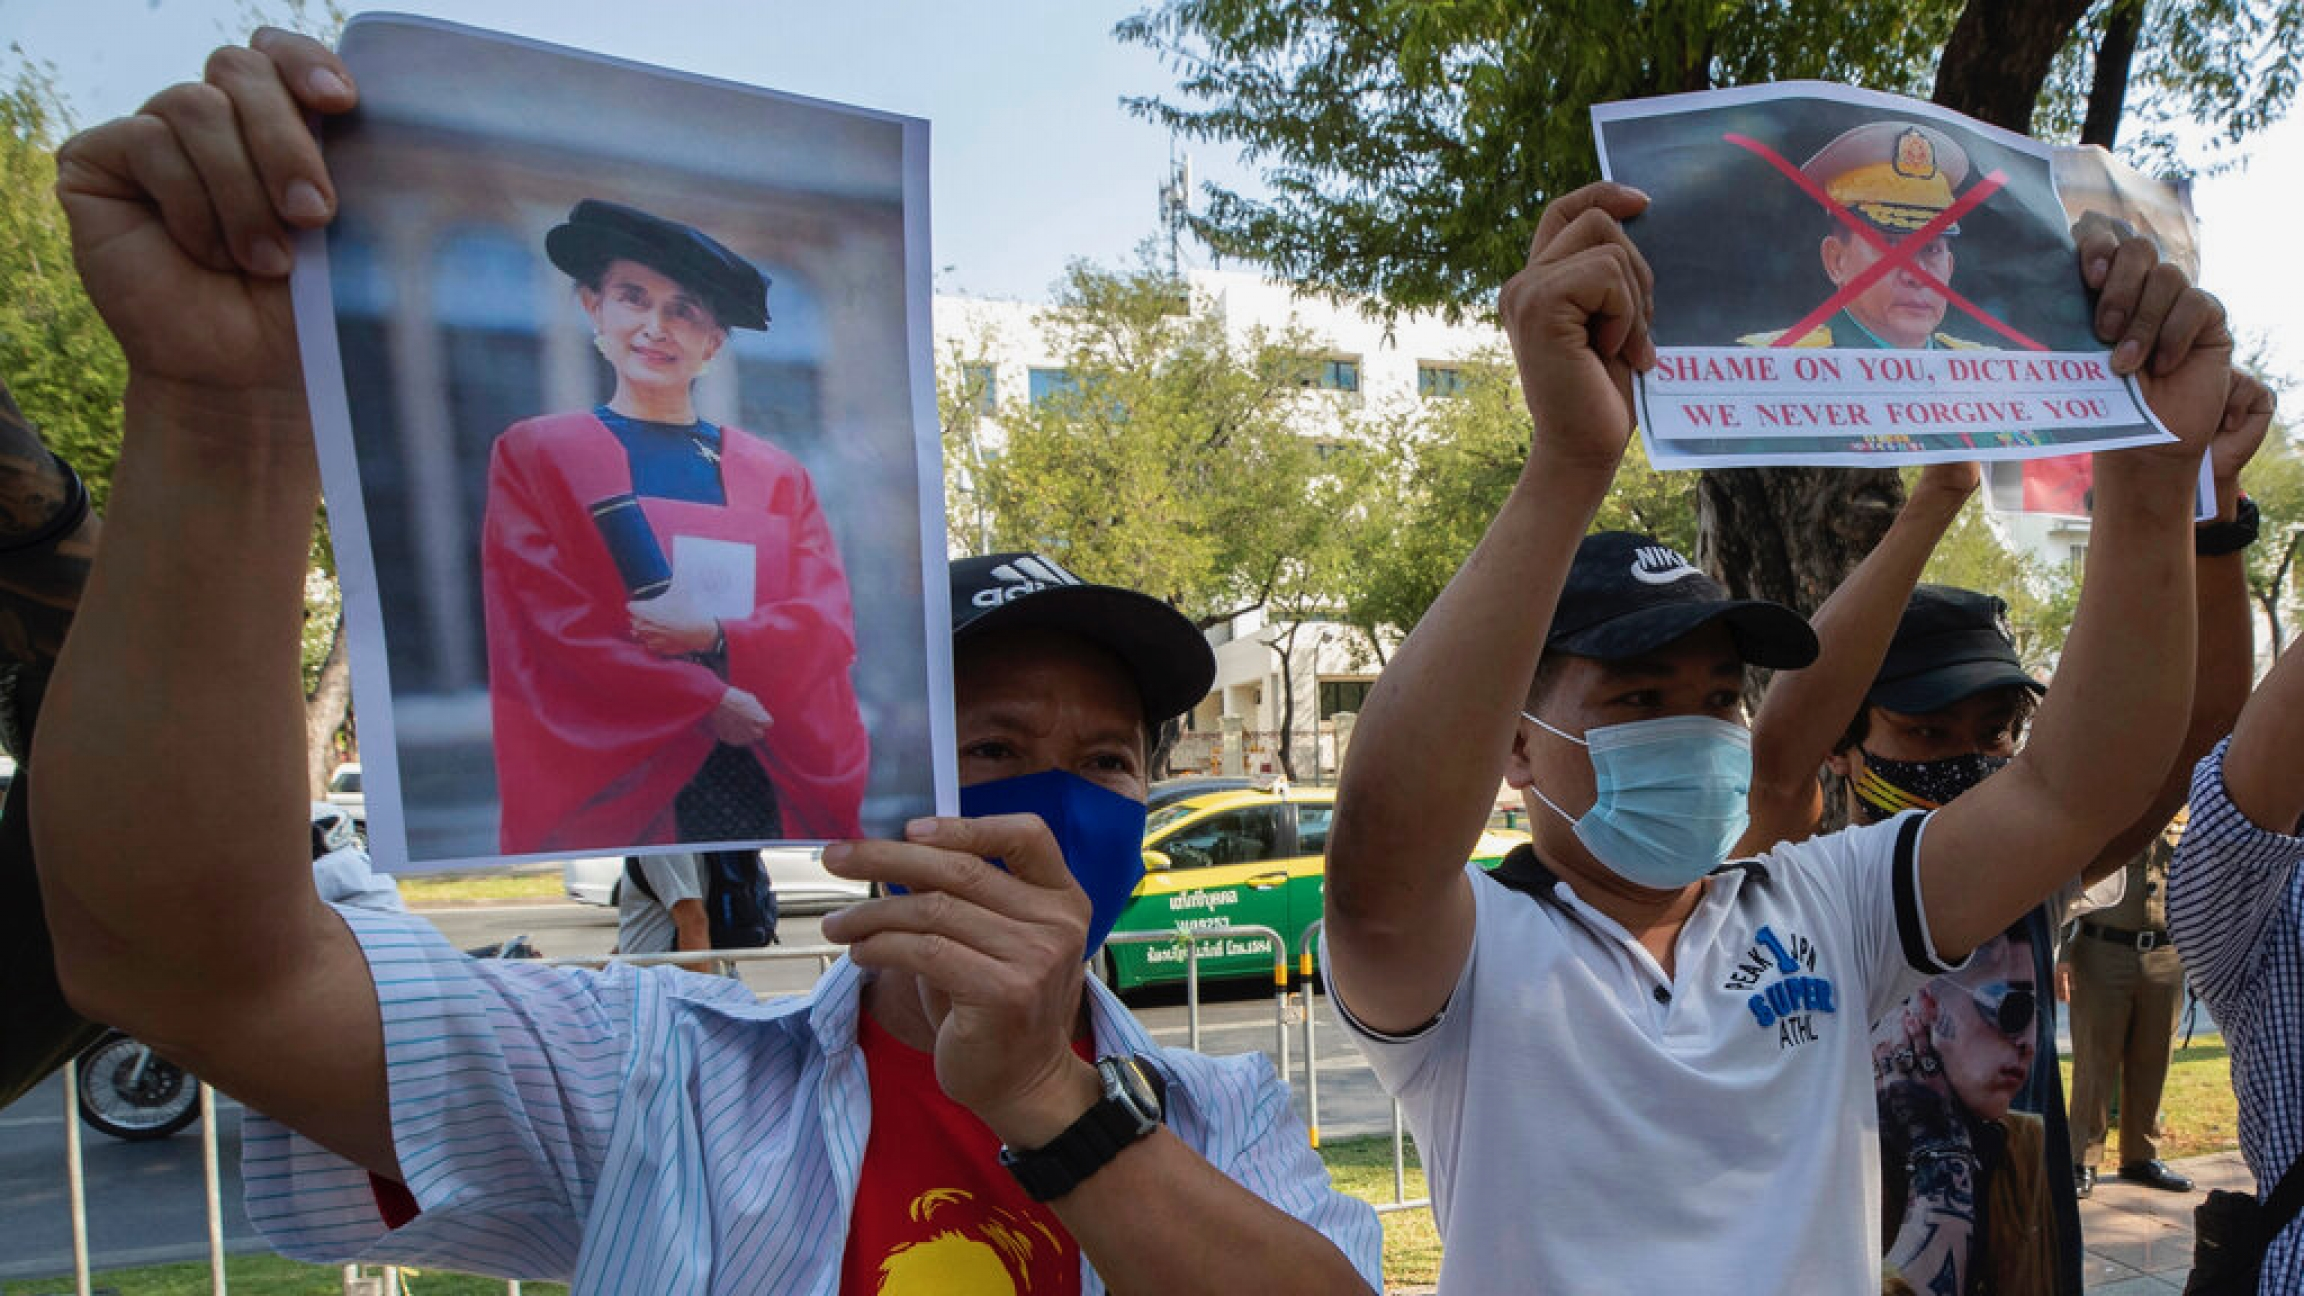 Myanmar nationals living in Thailand hold pictures of Myanmar leader Aung San Suu Kyi and Myanmar military Commander in Chief Senior Gen. Min Aung Hlaing during a protest in front of the United Nations building in Bangkok, Feb. 3, 2021.